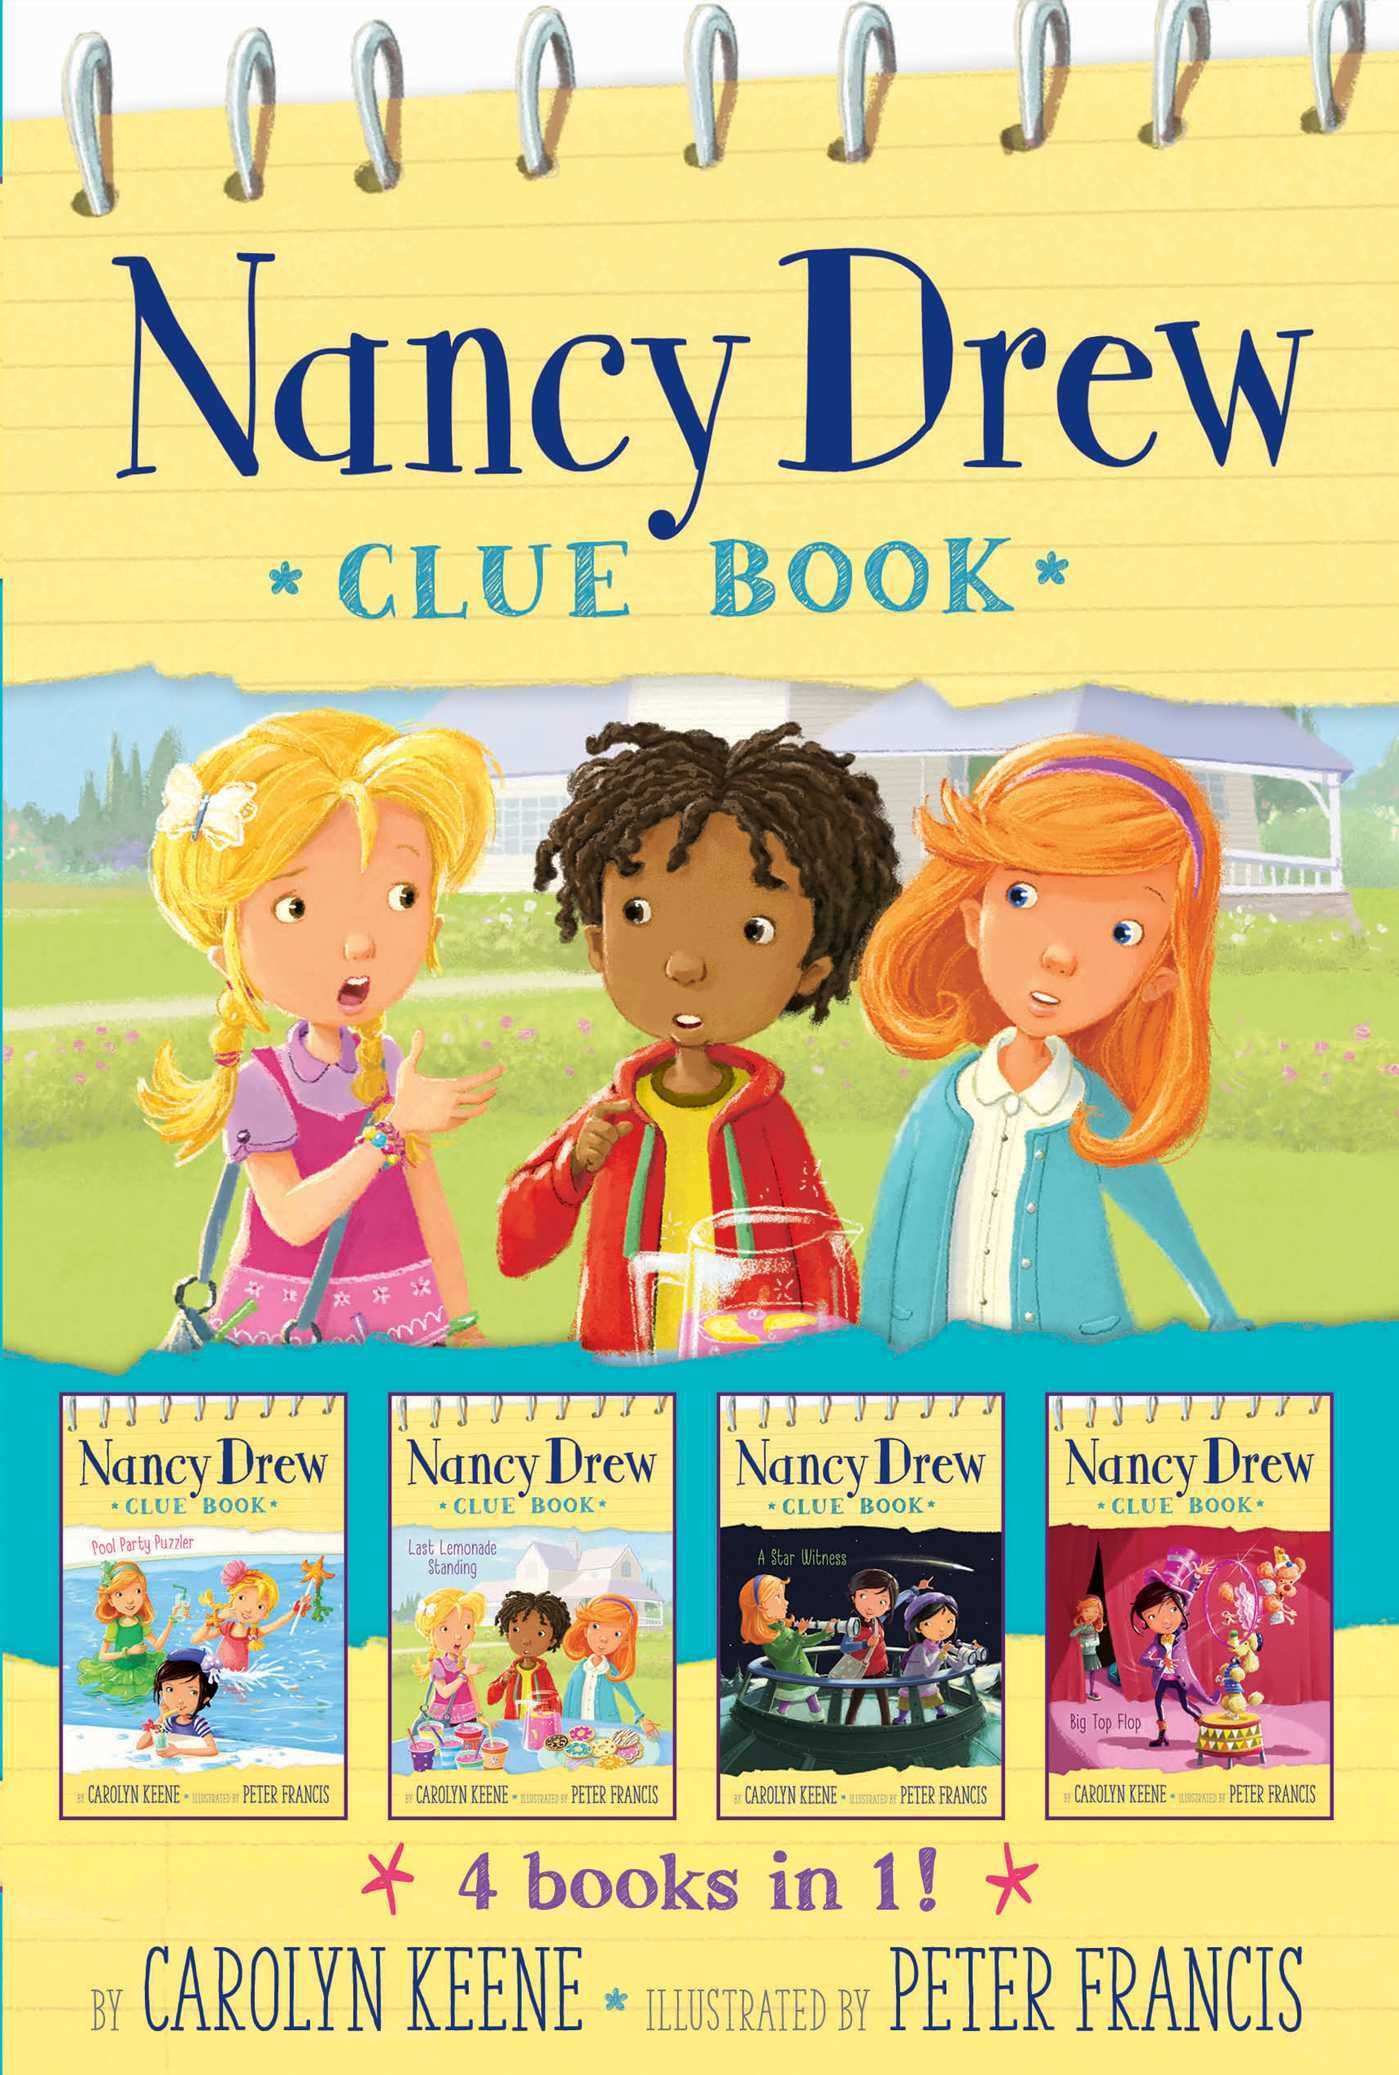 Nancy Drew Clue Book 4 books in 1!: Pool Party Puzzler; Last Lemonade Standing; A Star Witness; Big Top Flop